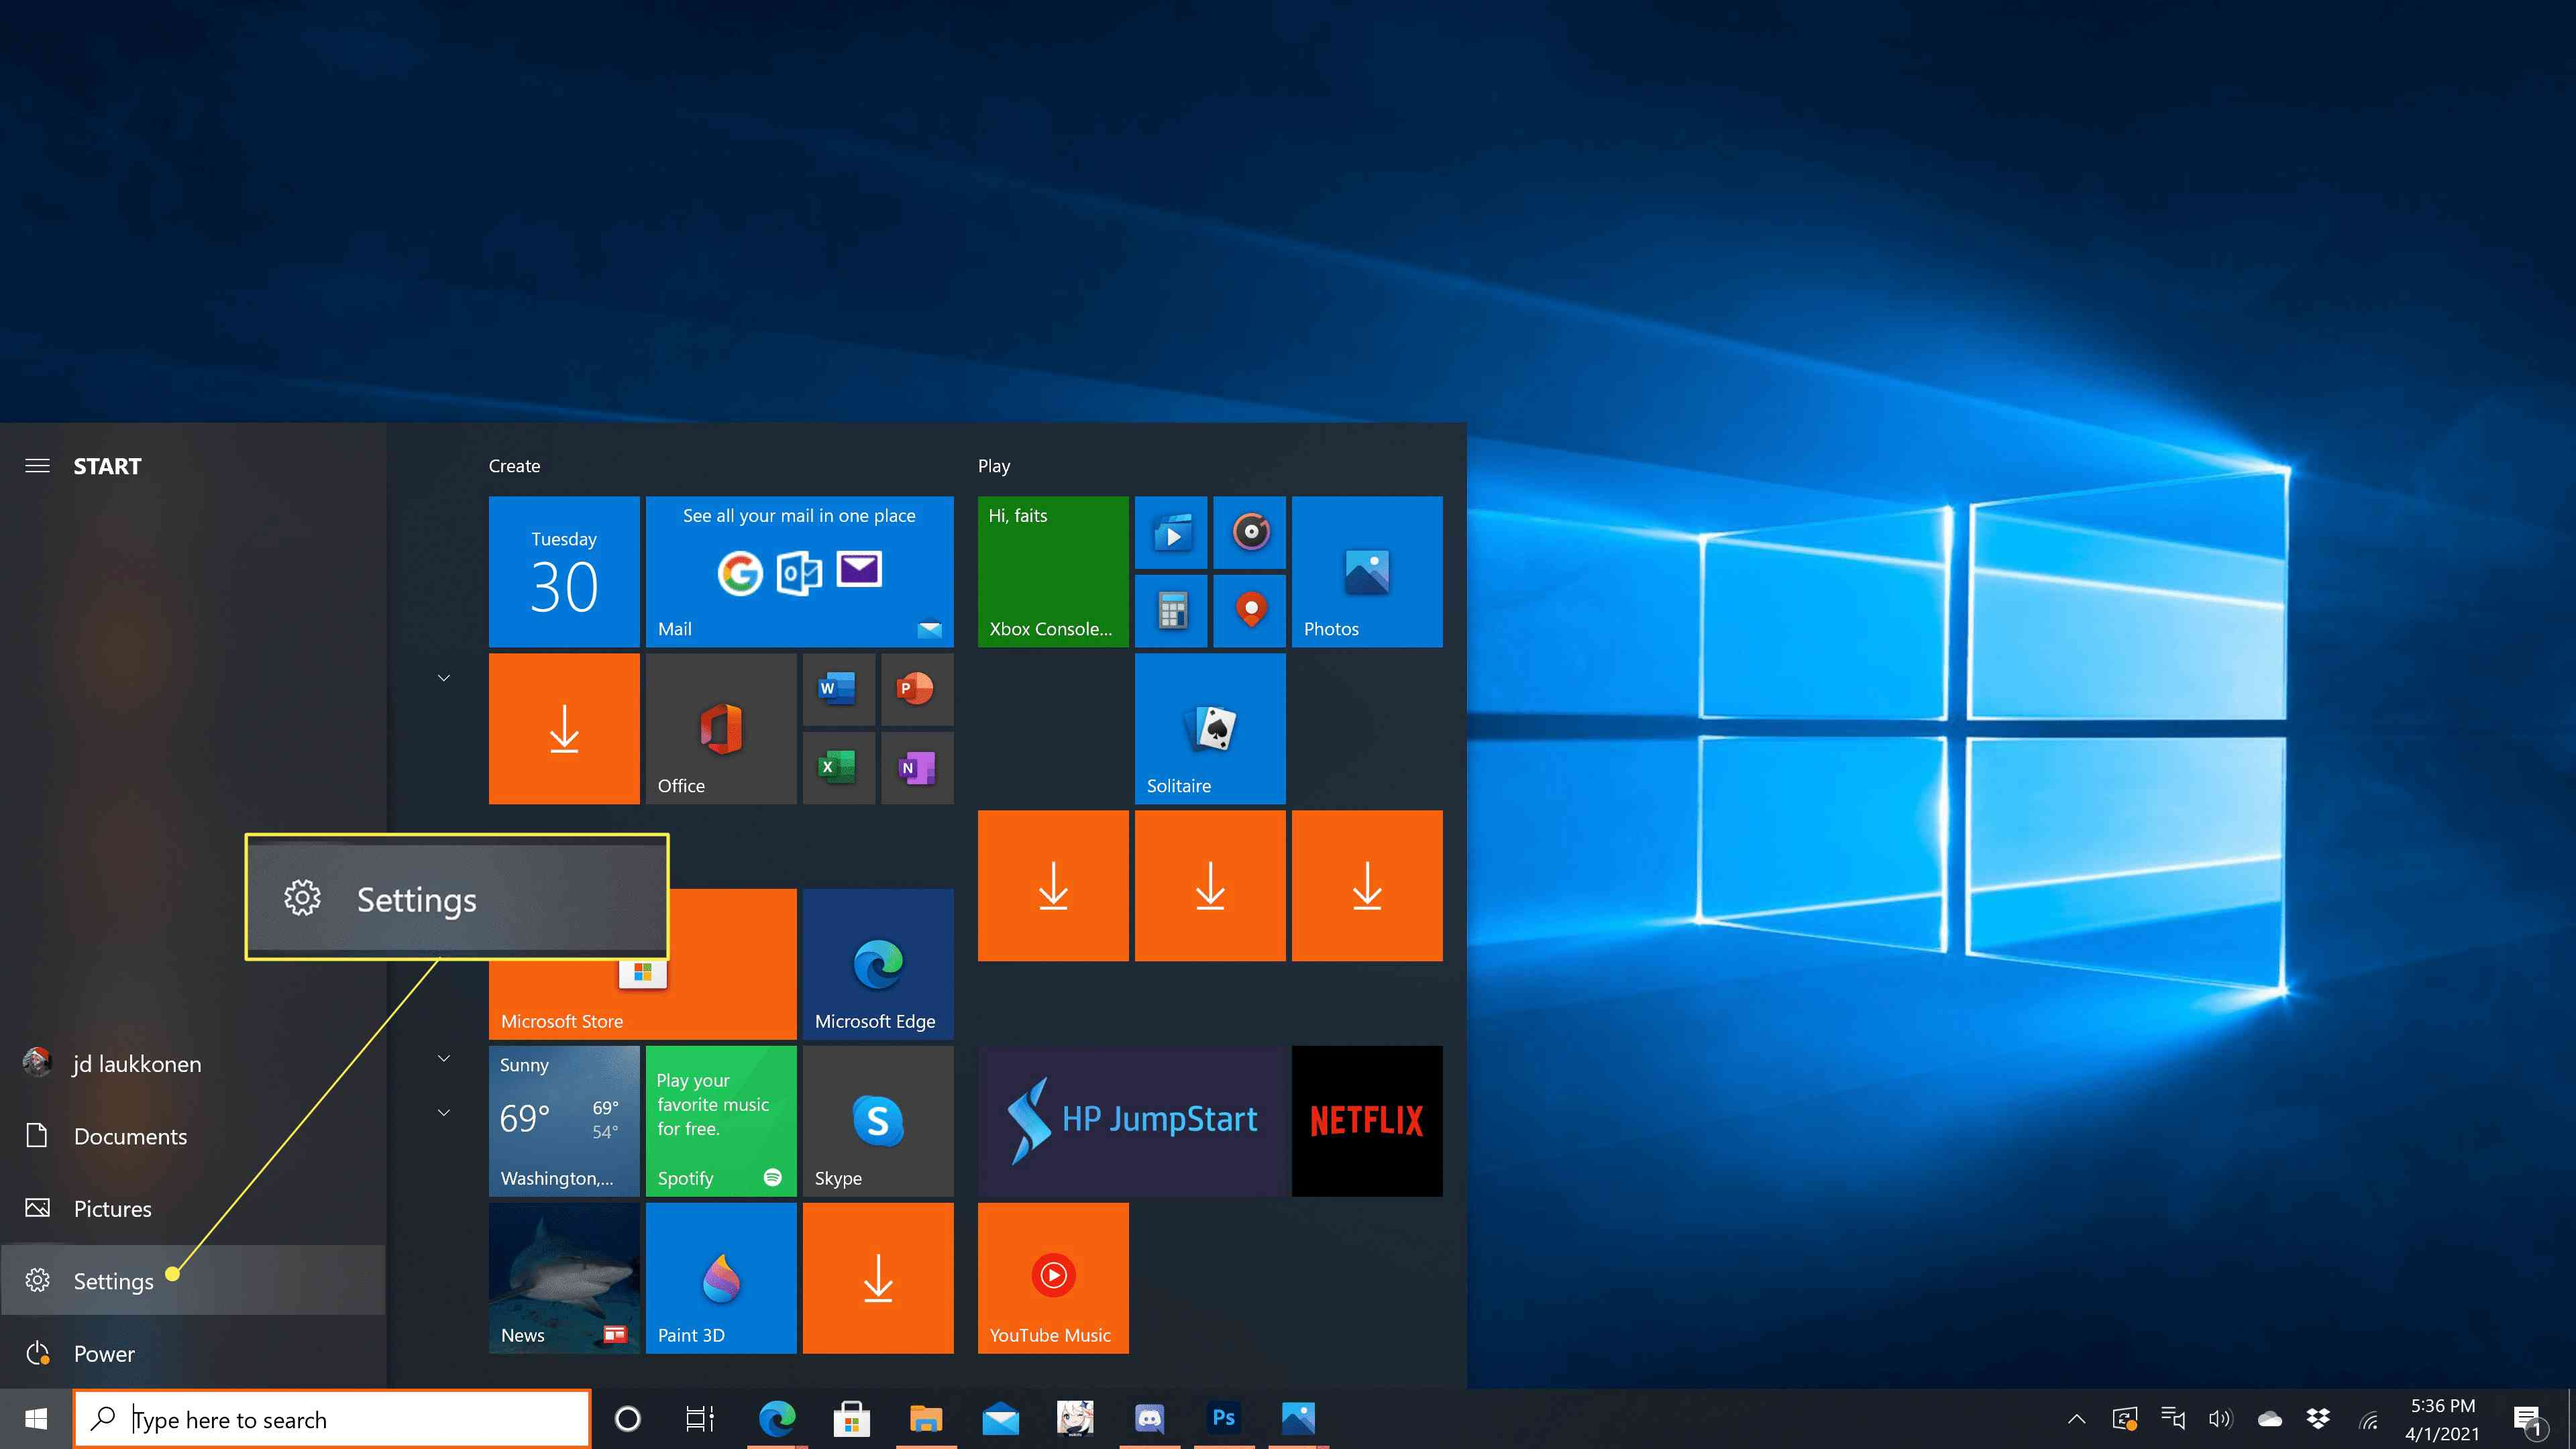 Settings highlighted in the Windows 10 start menu.